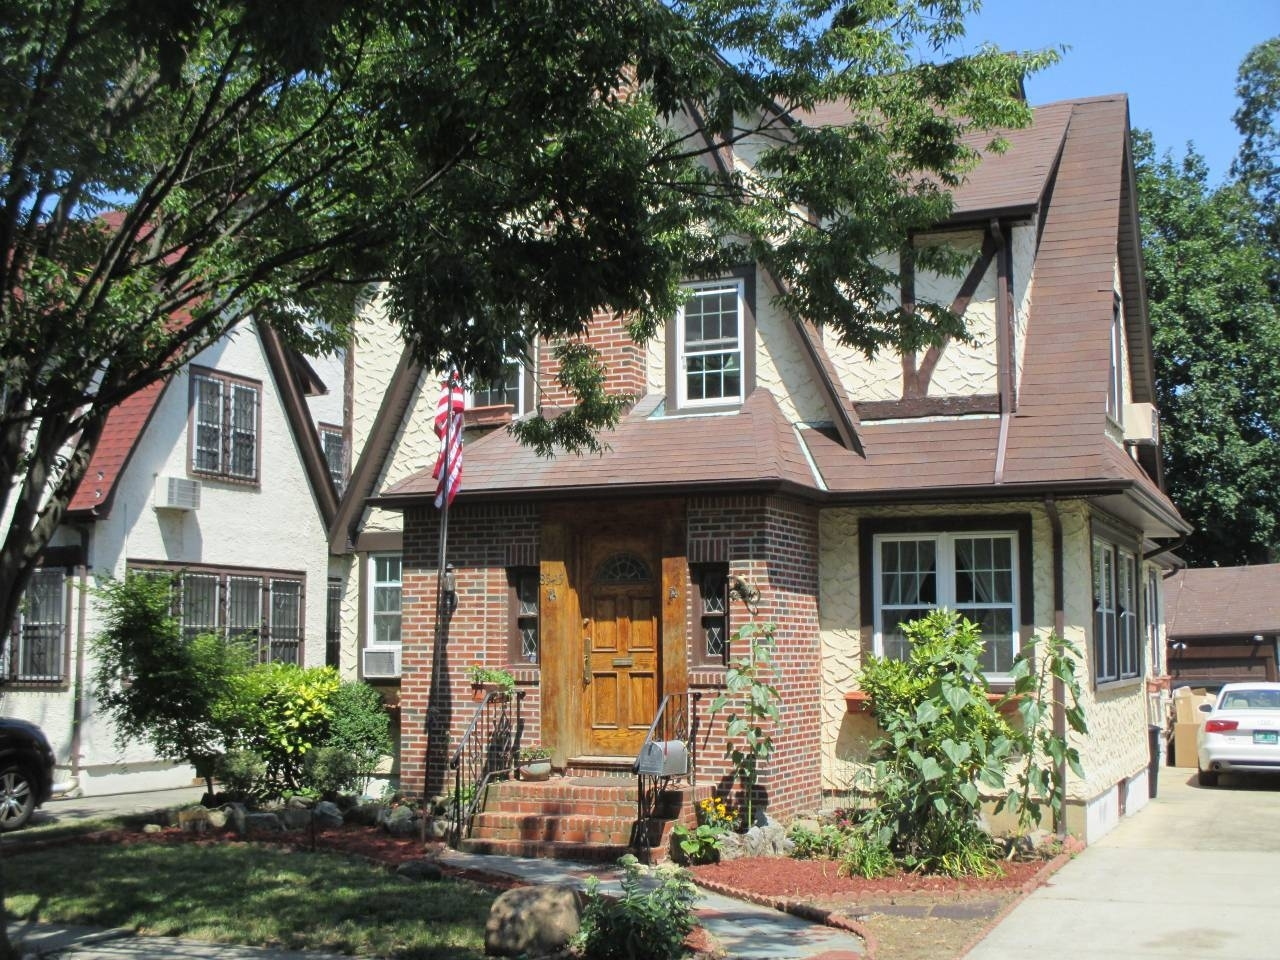 Trump's childhood home for rent on Airbnb for $700+ per night